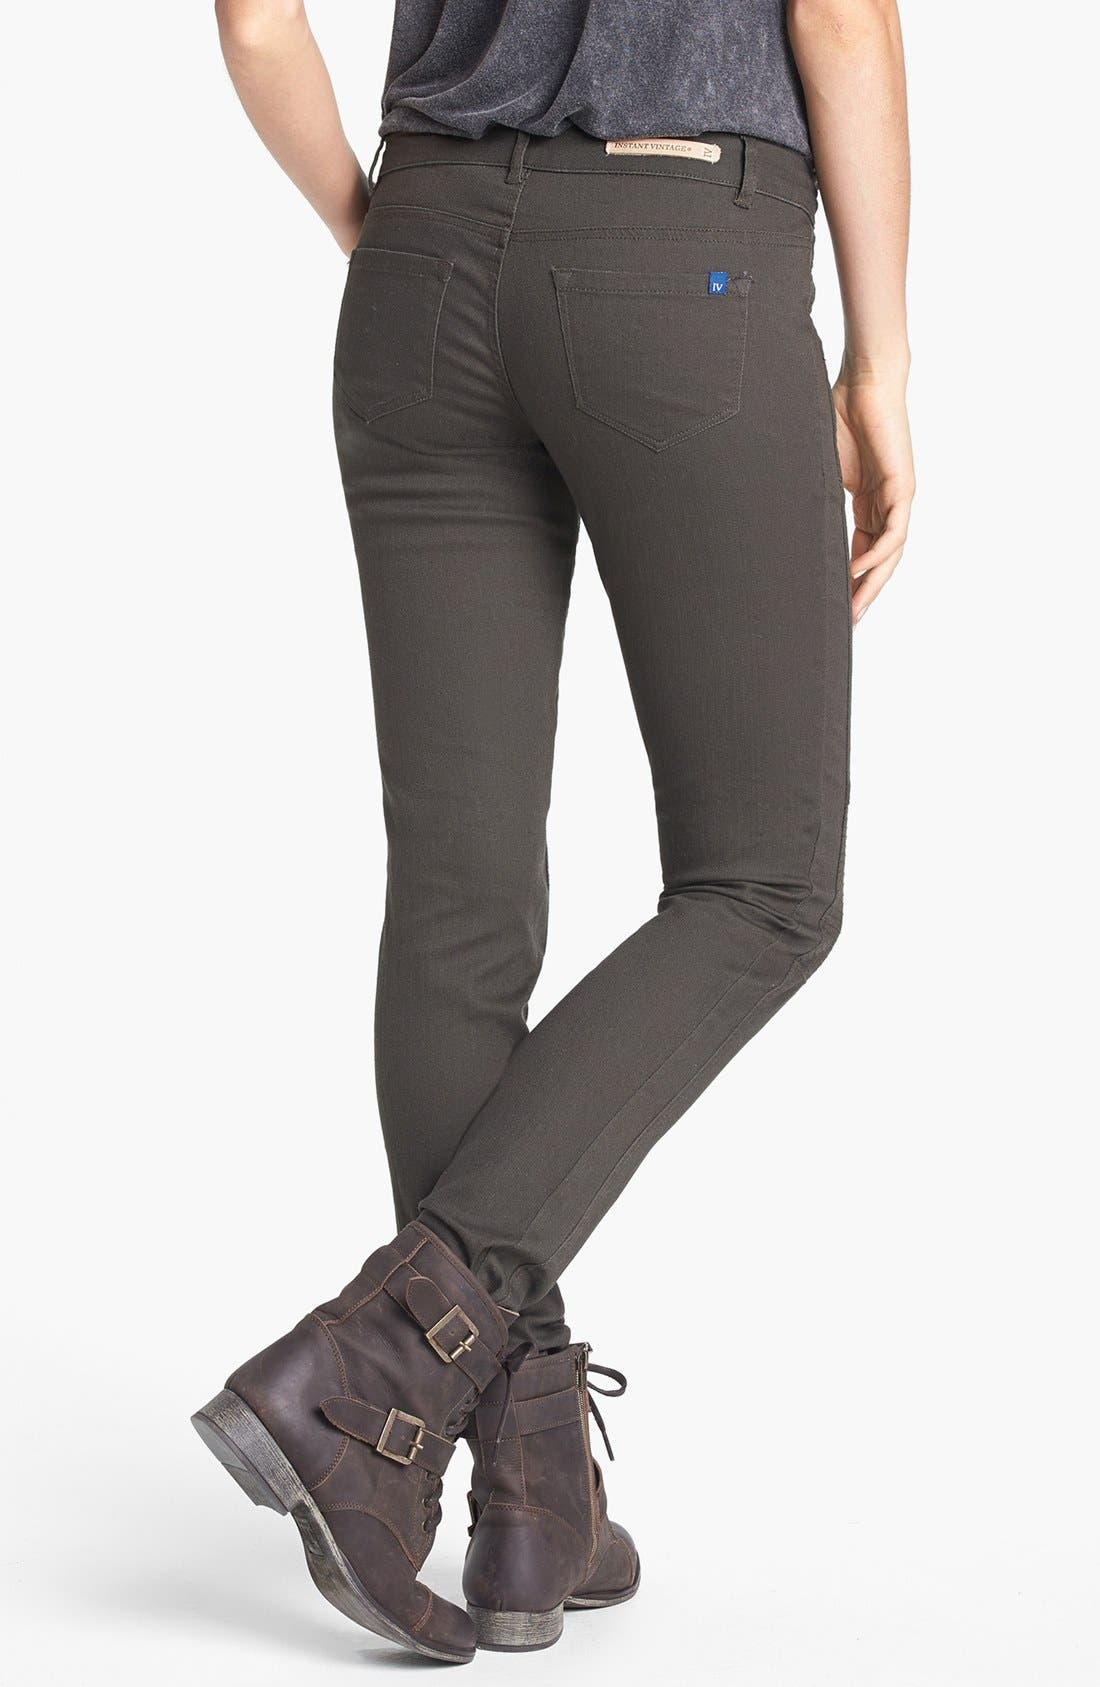 Alternate Image 2  - INSTANT VINTAGE Moto Skinny Jeans (Army Green) (Juniors) (Online Only)